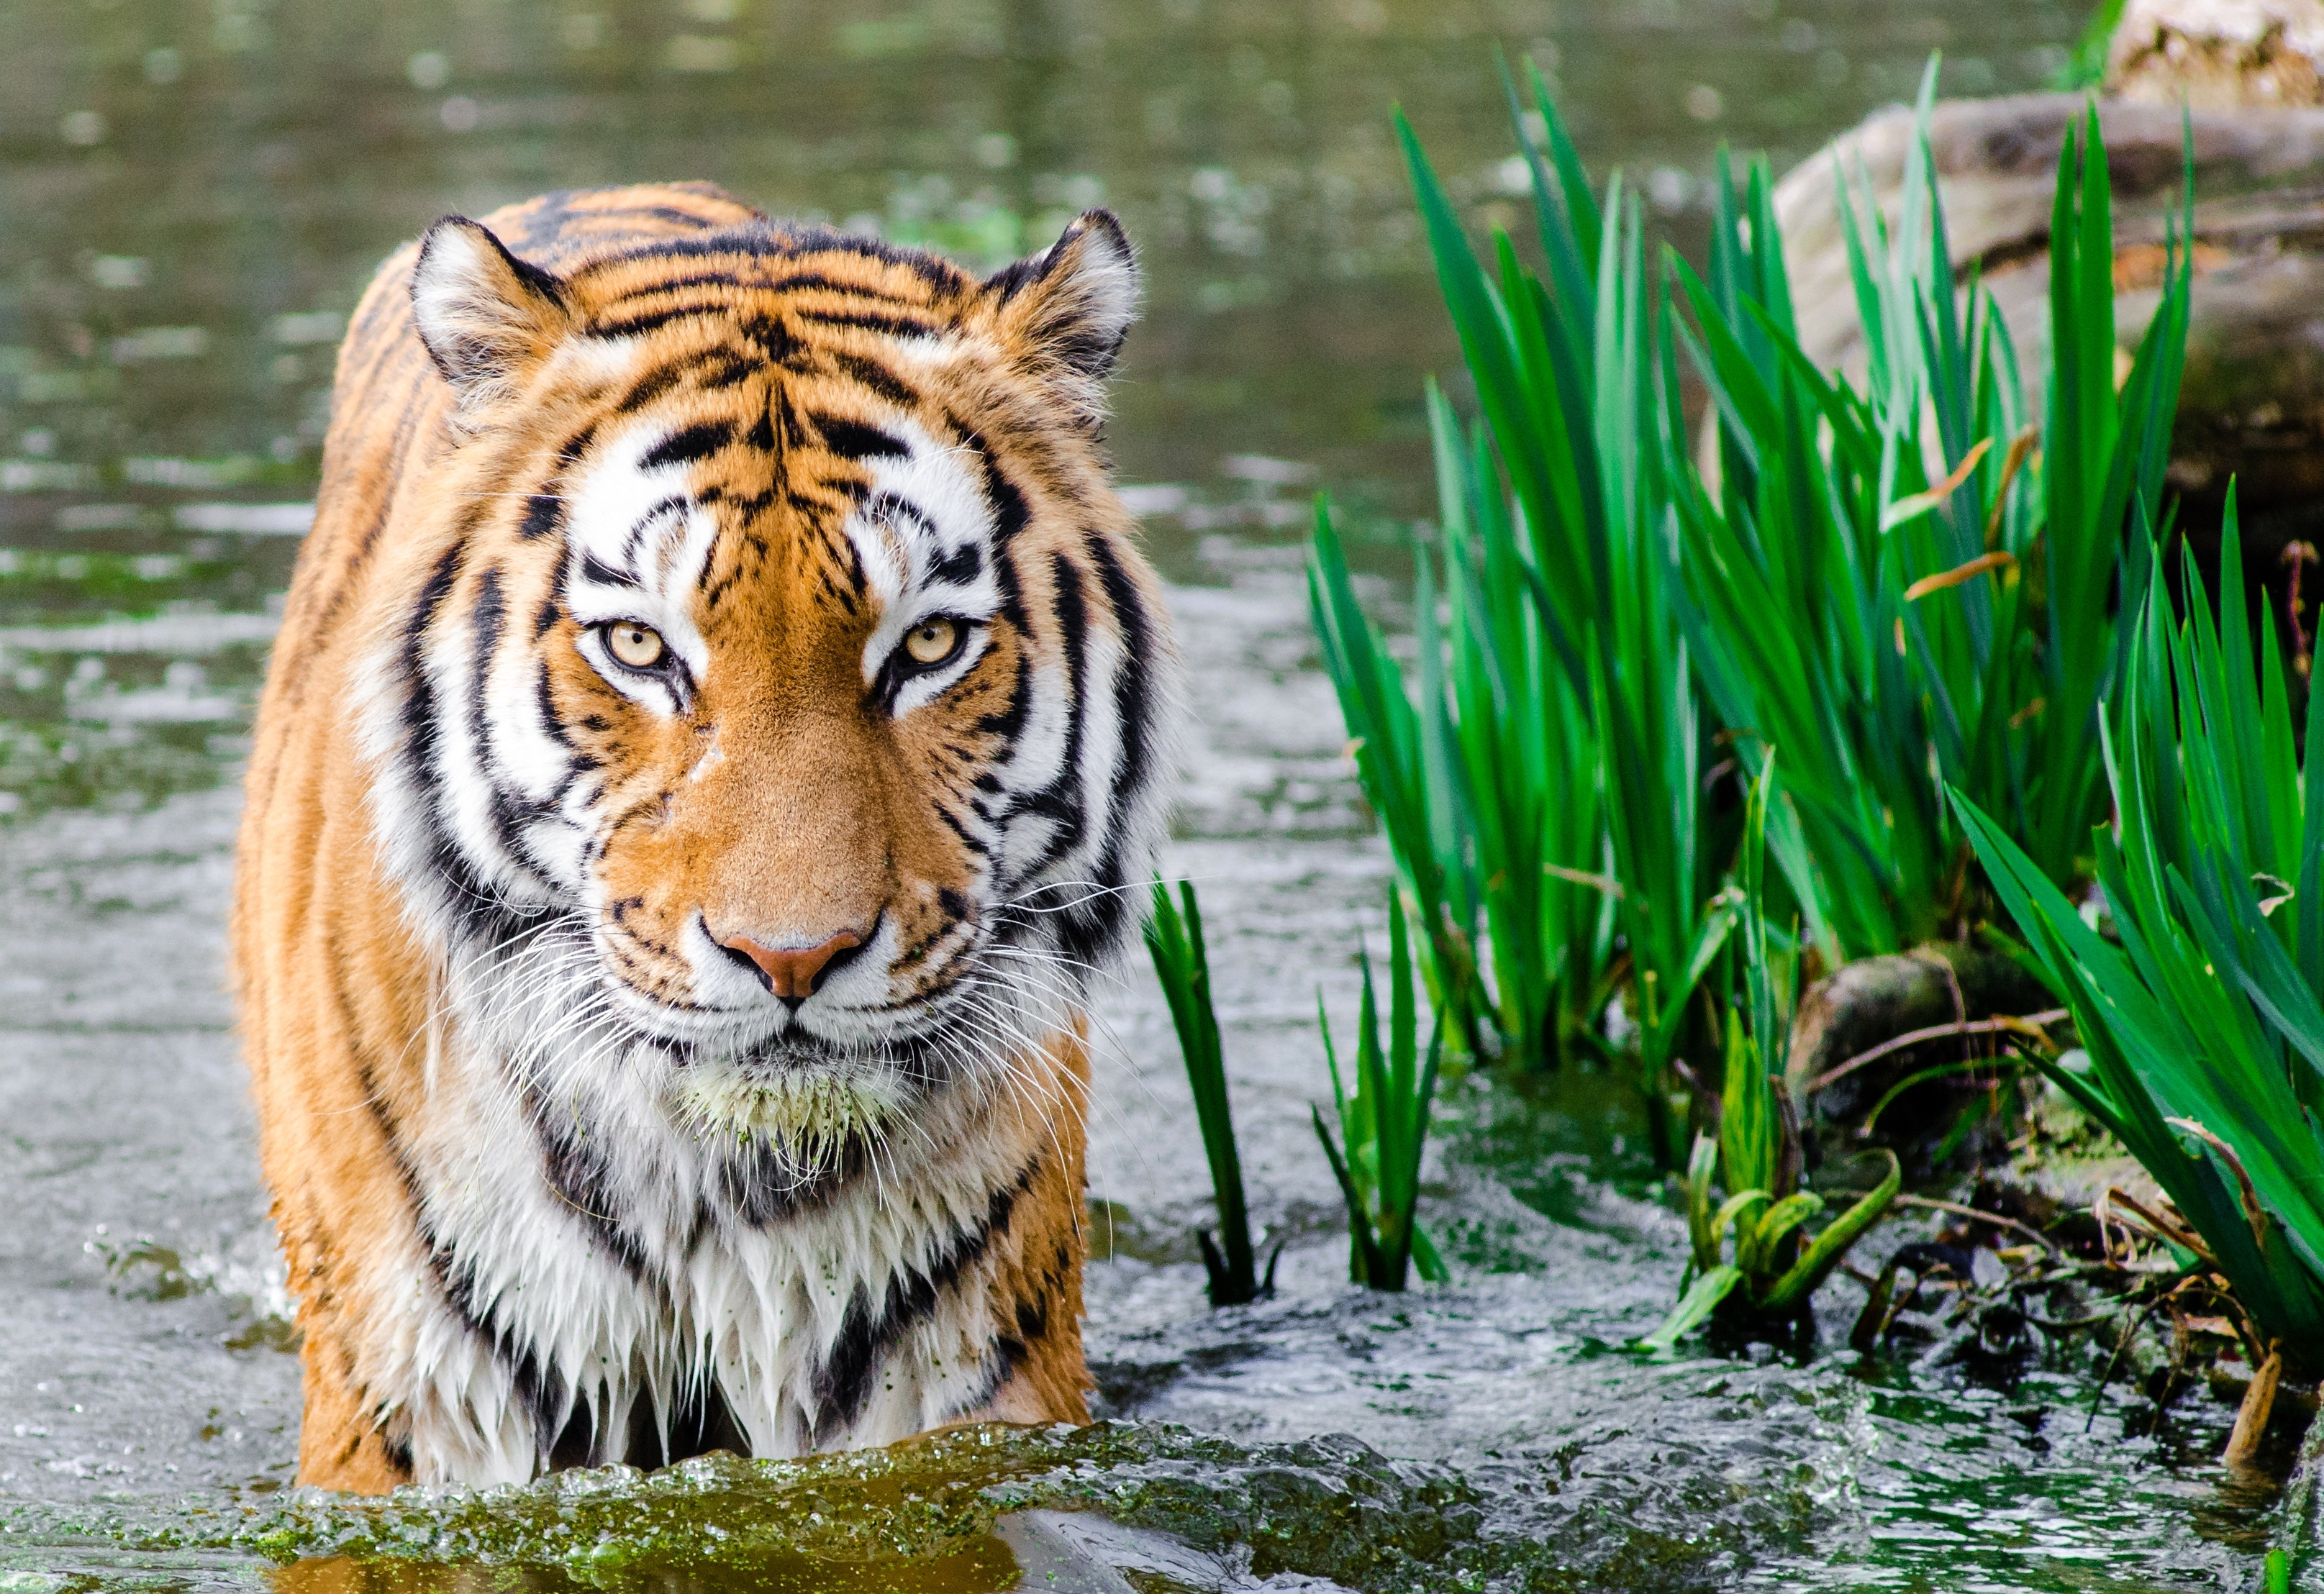 Bengal tiger half soak body on water during daytime photo